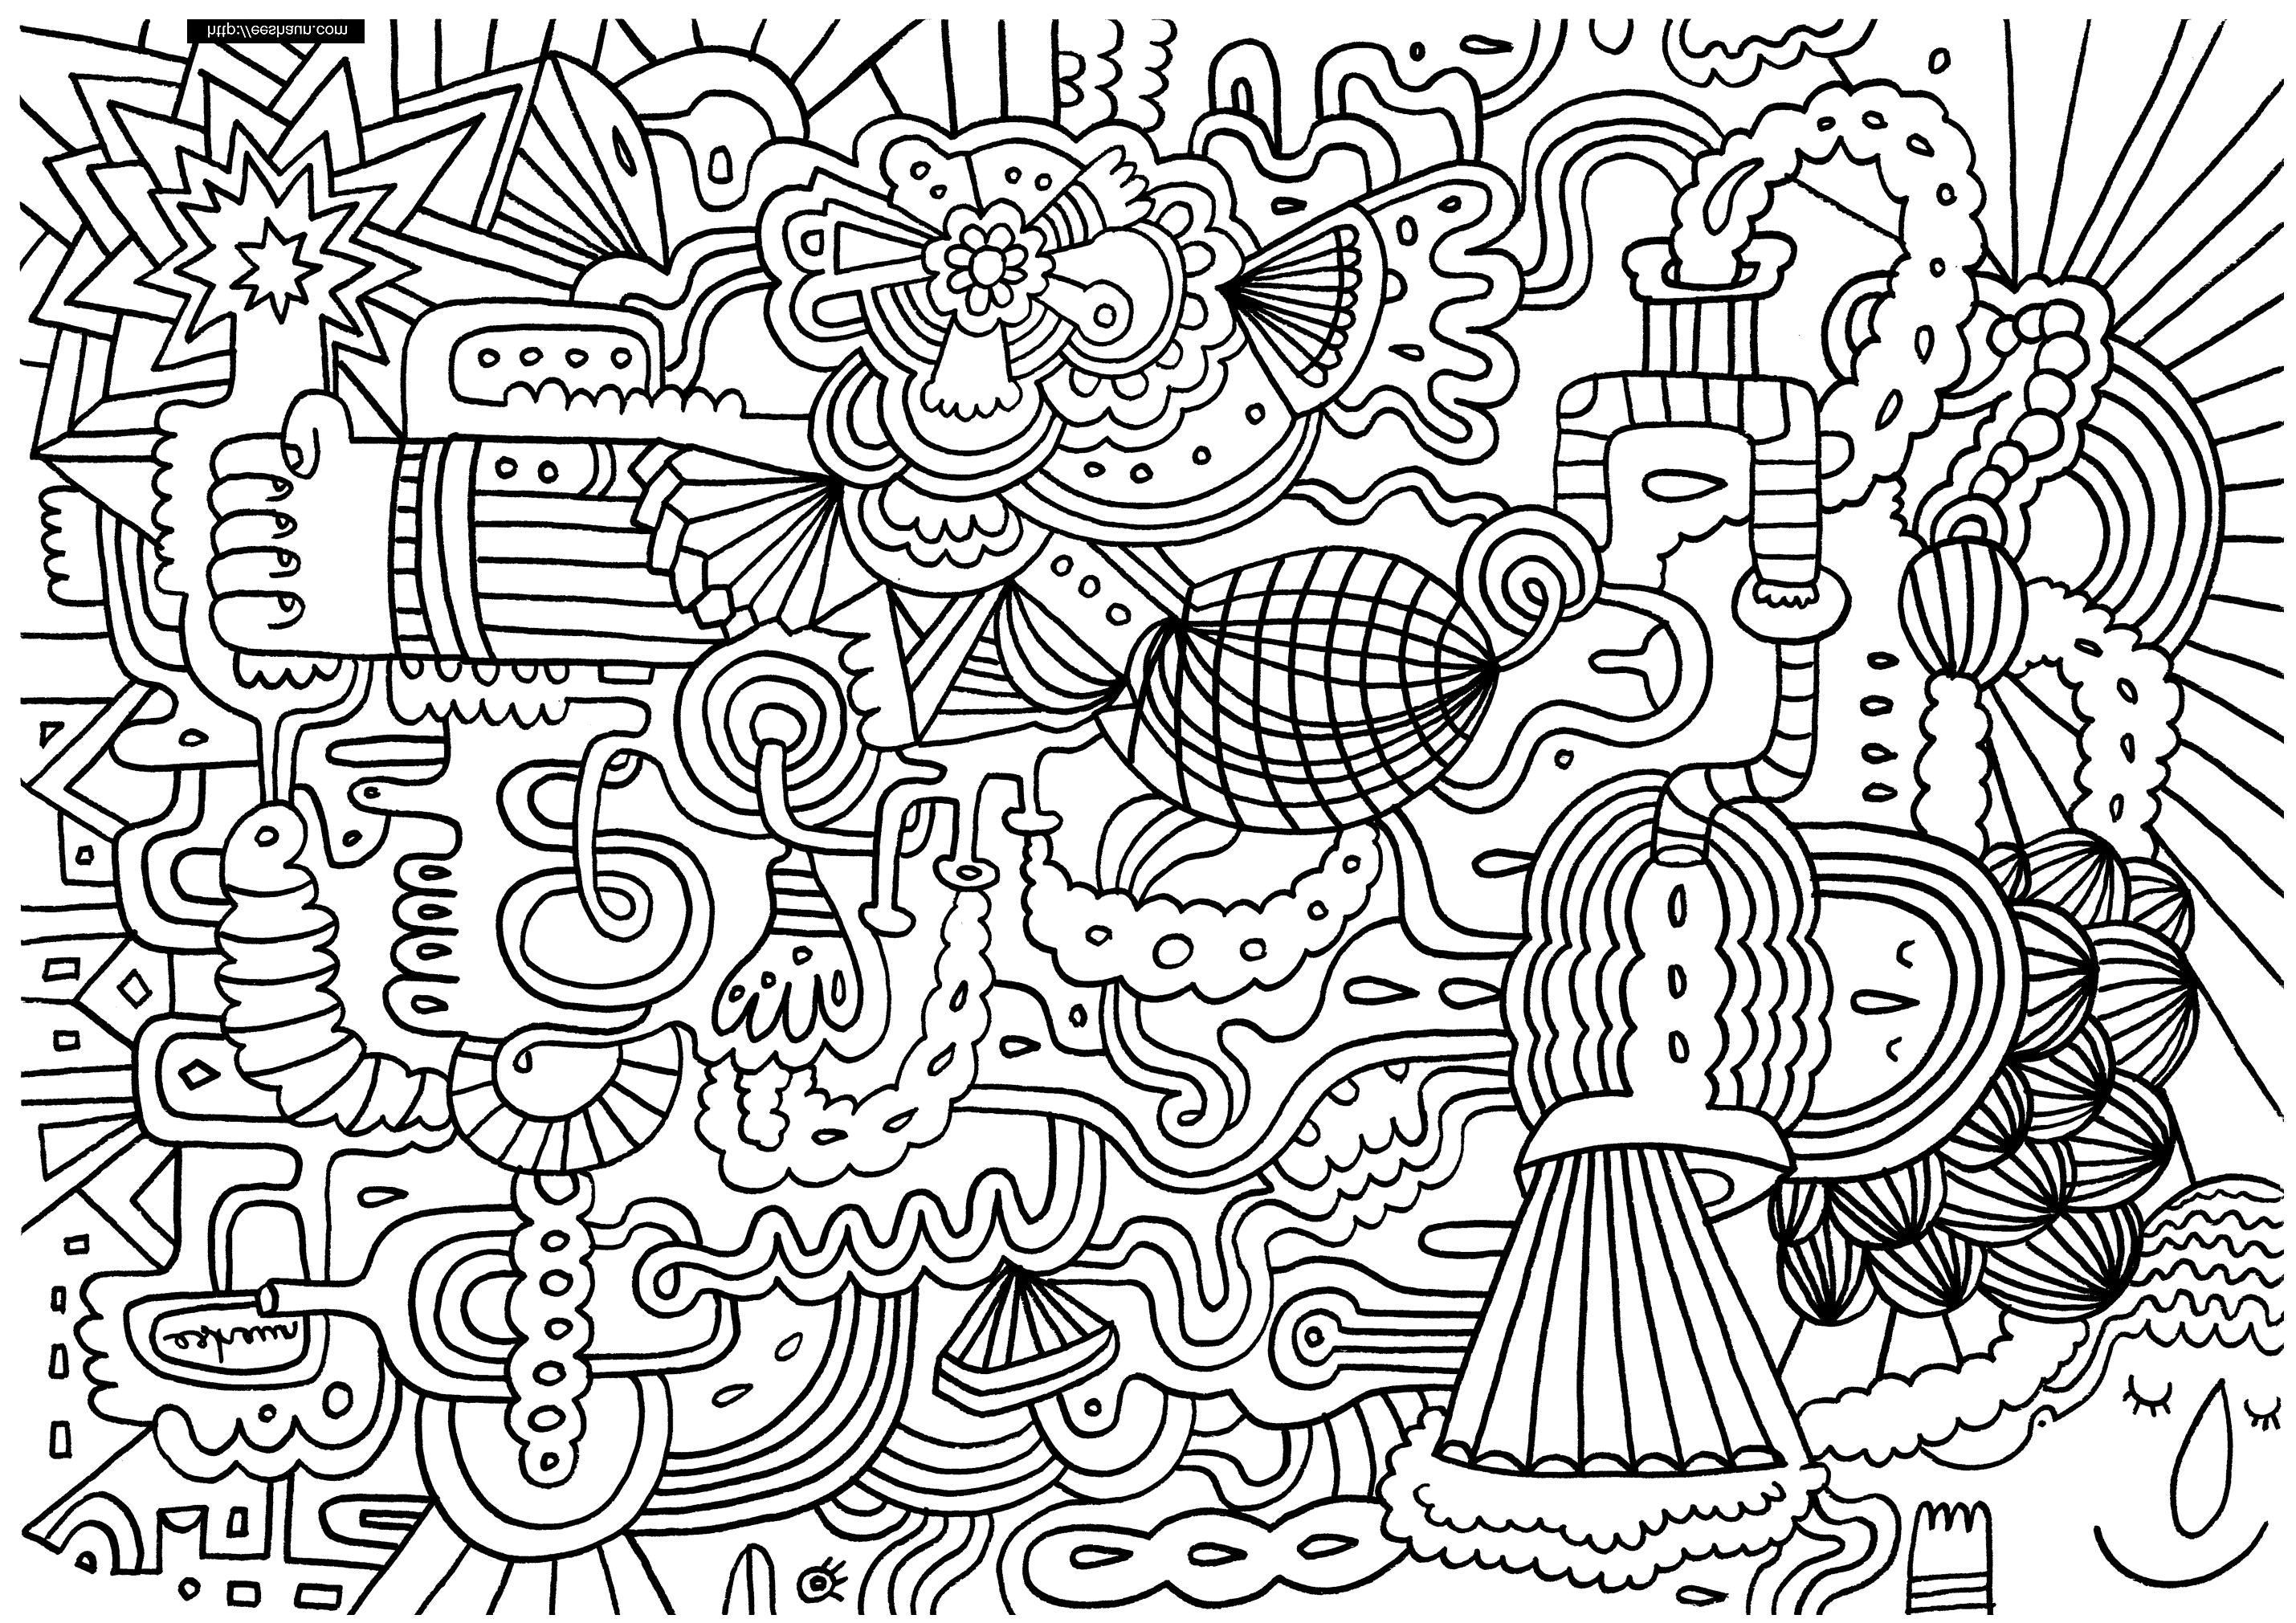 kids art coloring pages coloring pages for kids by kids art starts pages coloring kids art